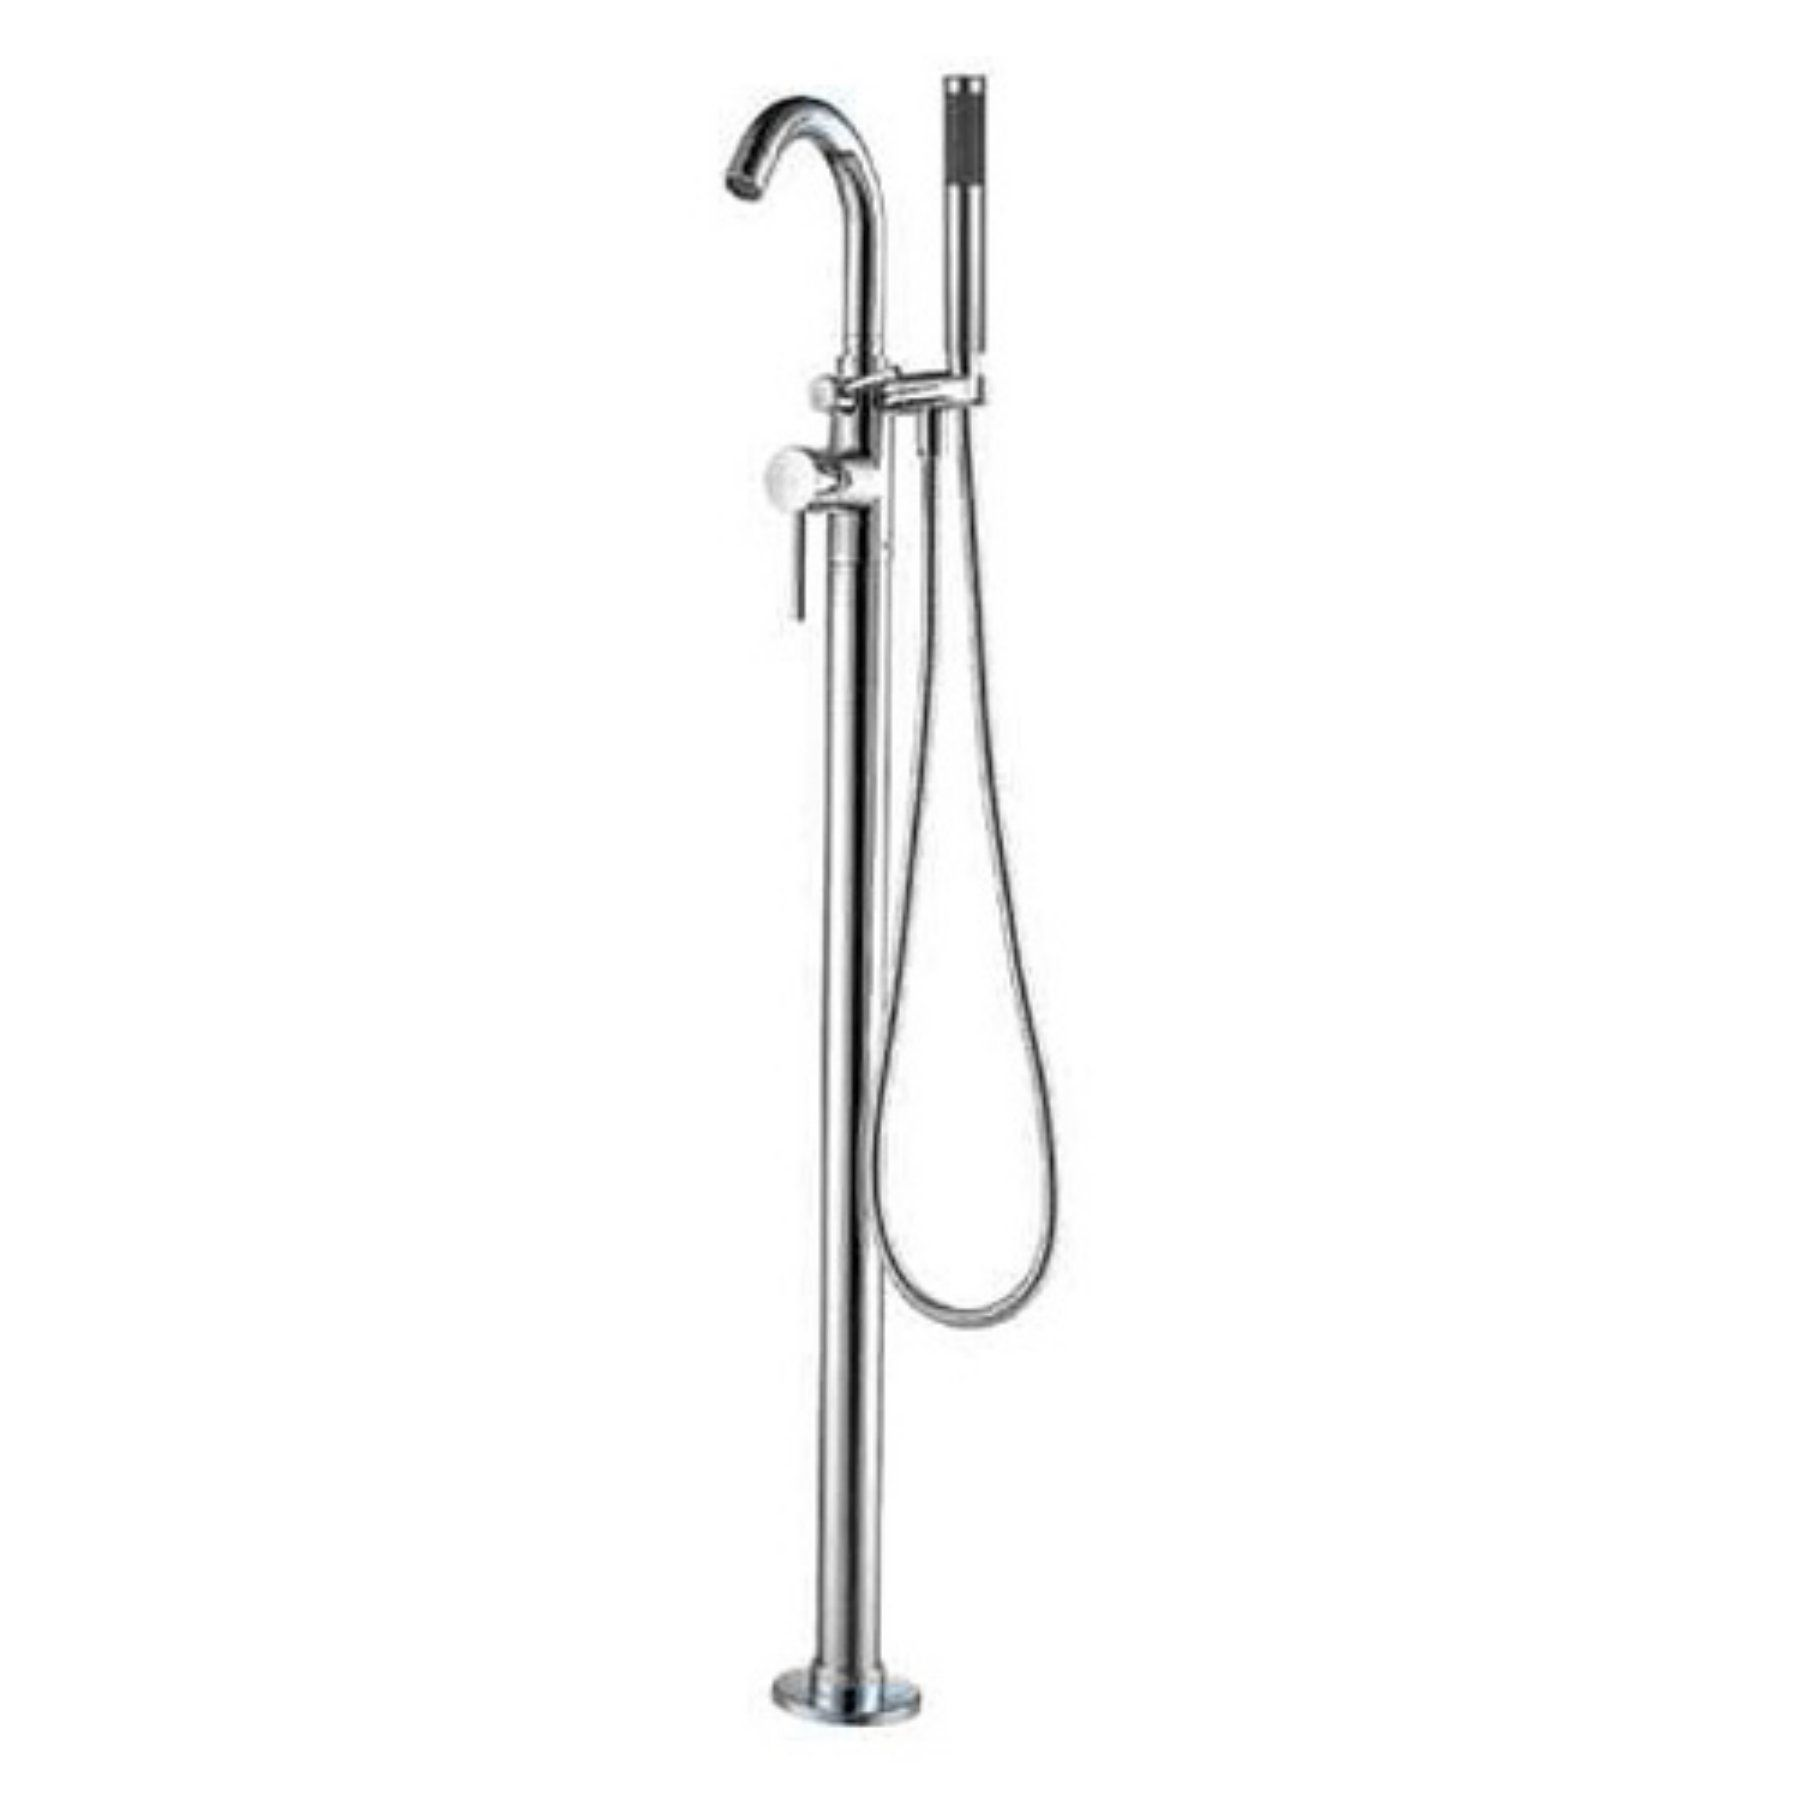 Alfi Ab2534 Floor Mounted Tub Filler Mixer With Hand Shower